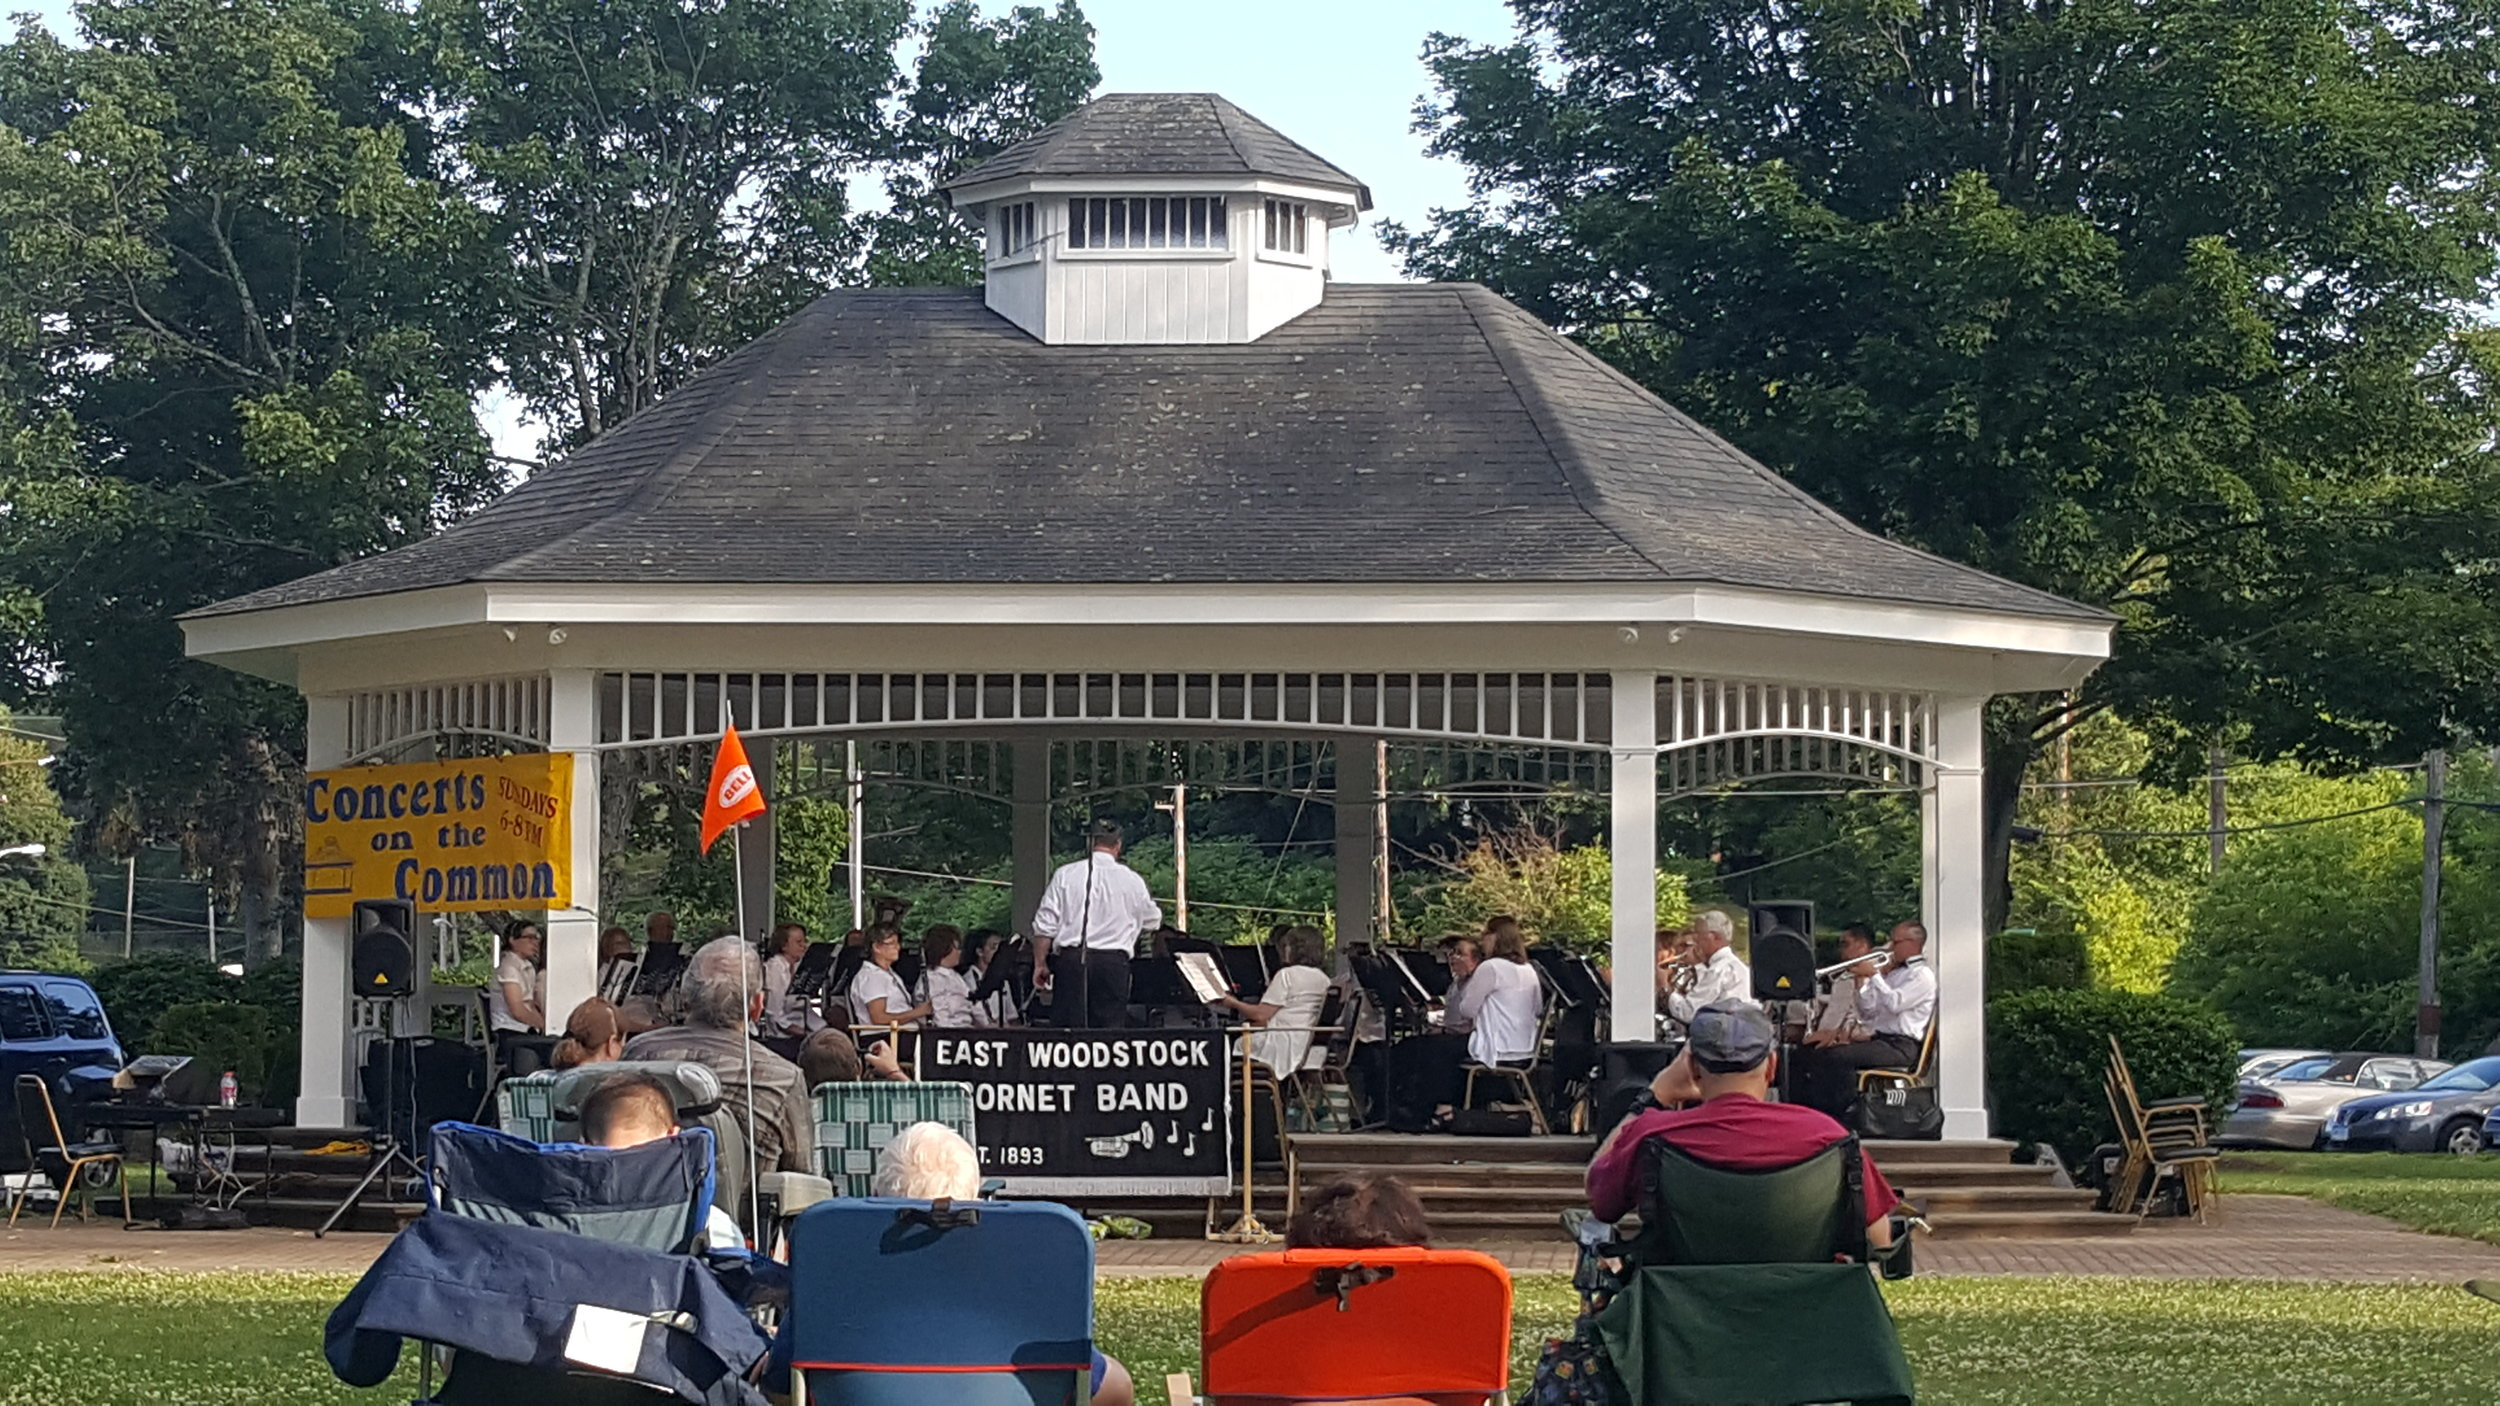 Southbridge Concert on the Commons